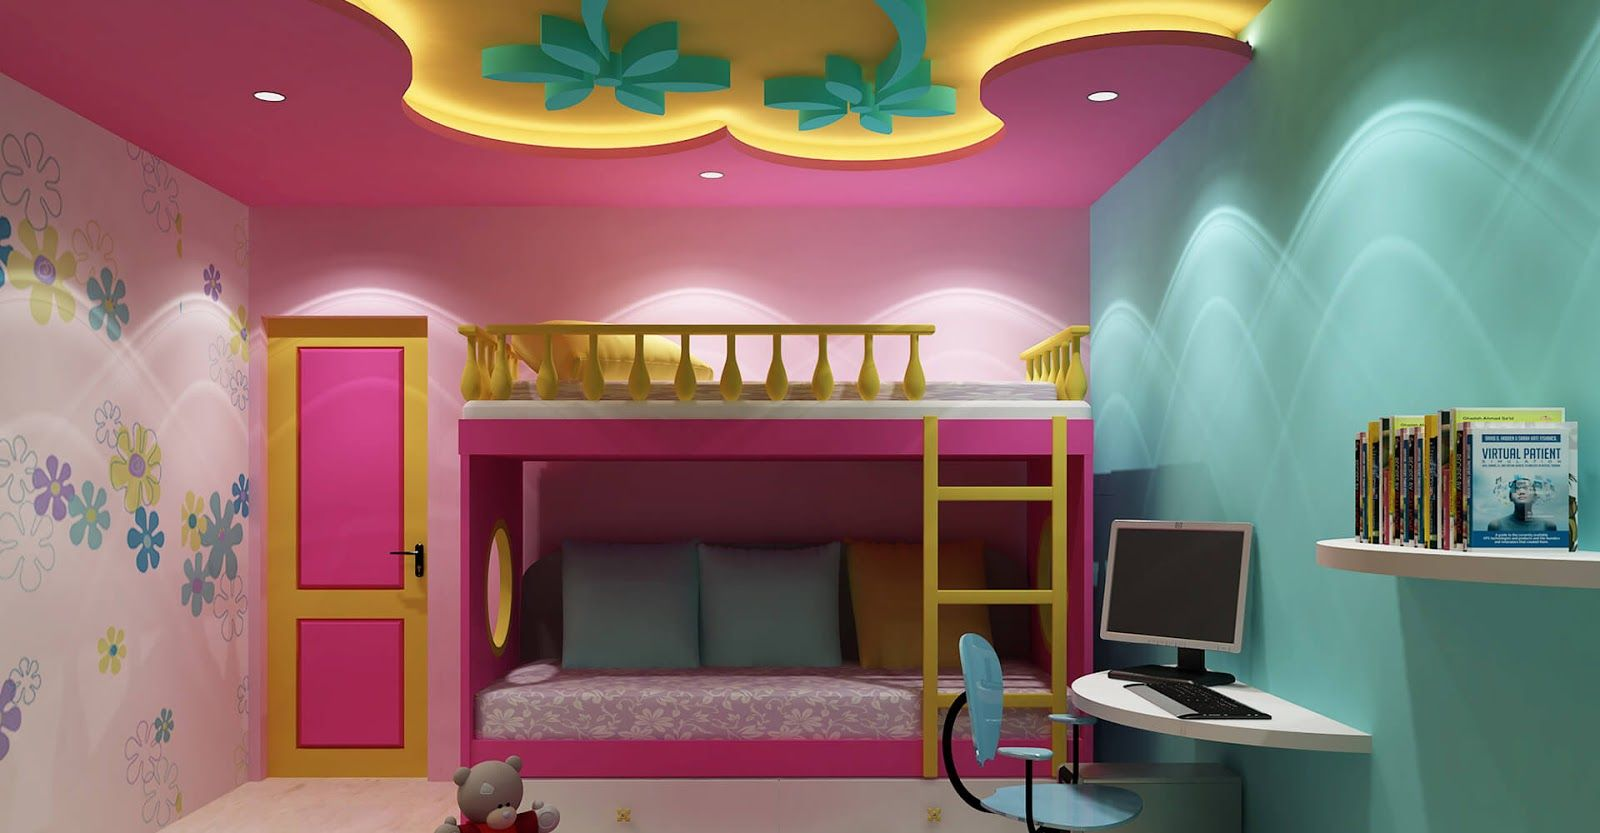 Beautiful False Ceiling Design For Kids Bedroom Interior 2018 Stretch Ceilings In Our Country Are Incredibly Por A Room